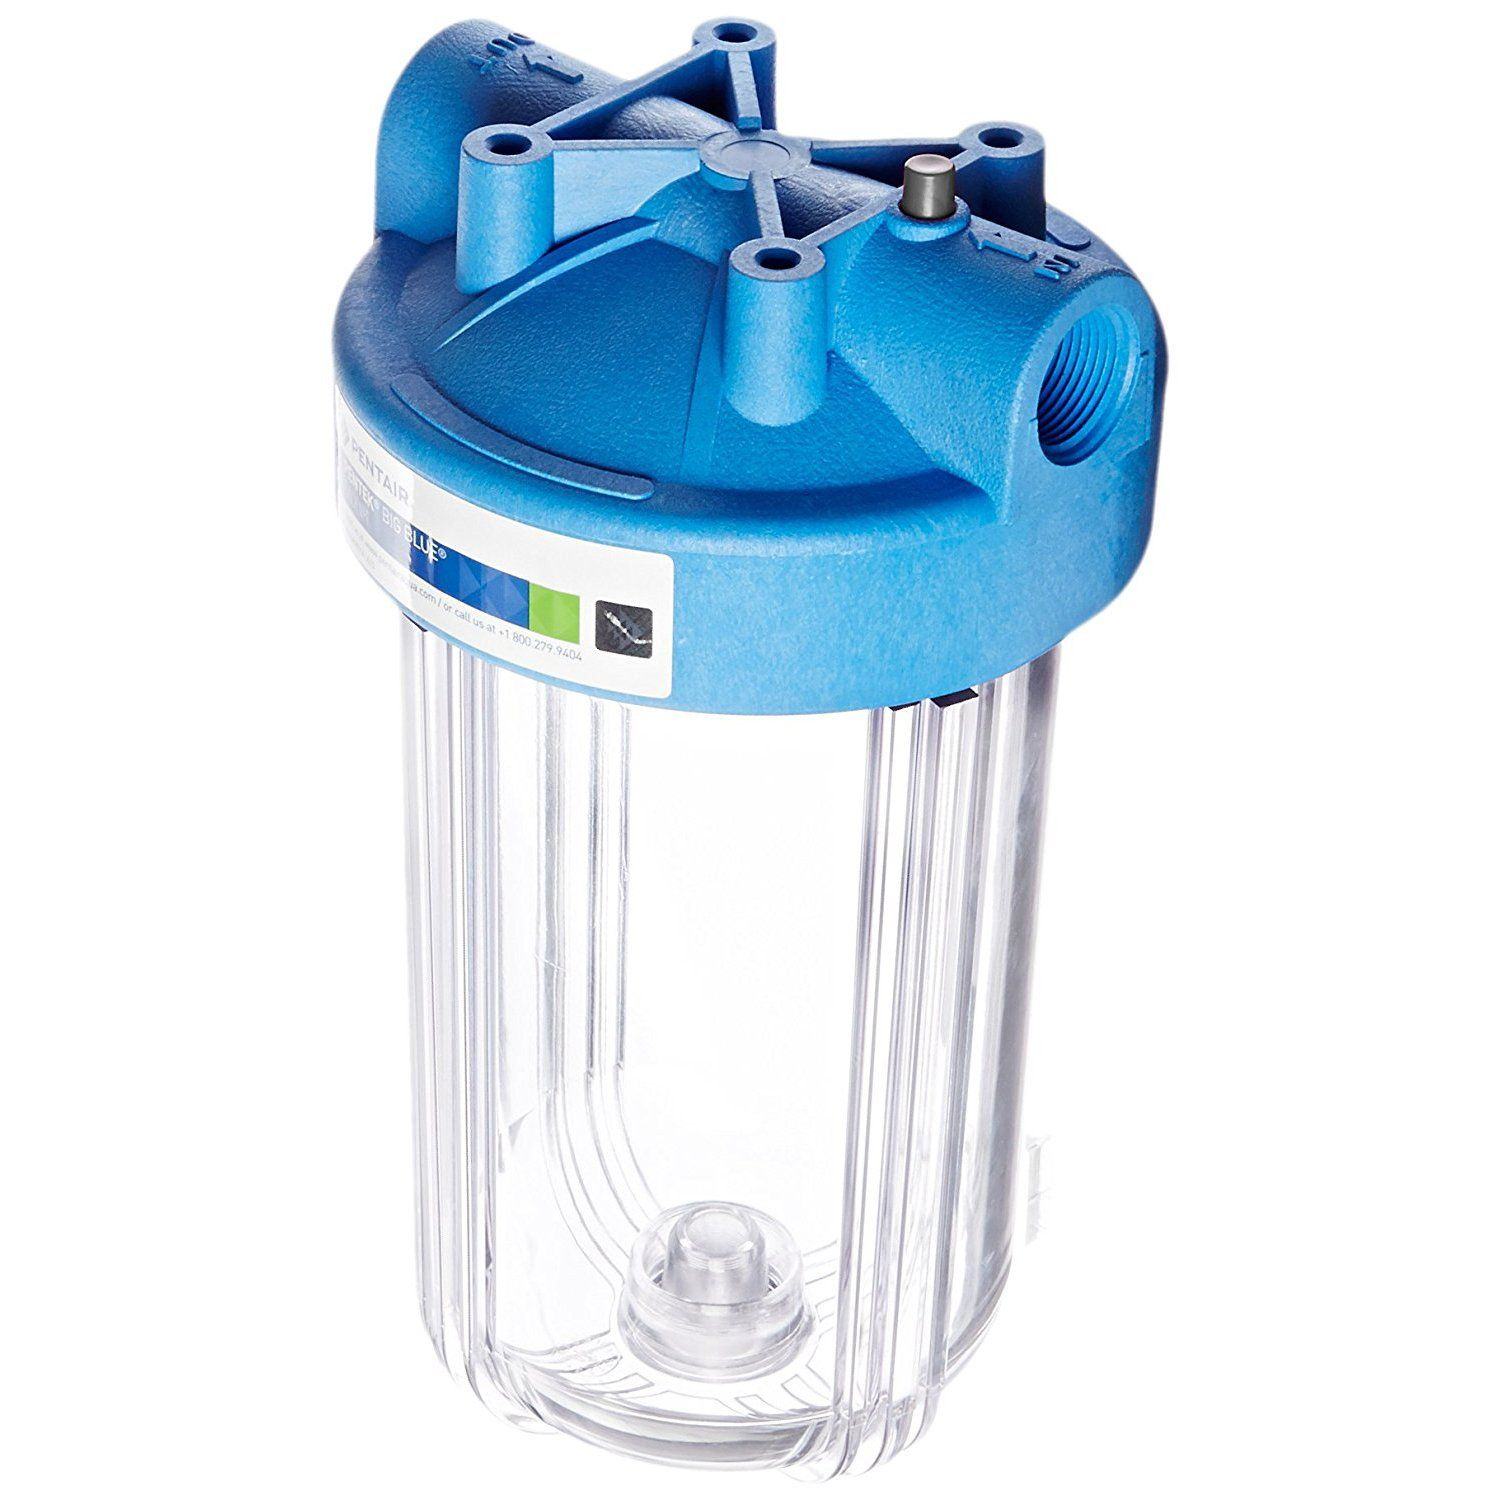 Pentek Big Clear Lx 10 Whole House 10 Filter Housing Clear Whole House Water Filter Blue Filter Filters